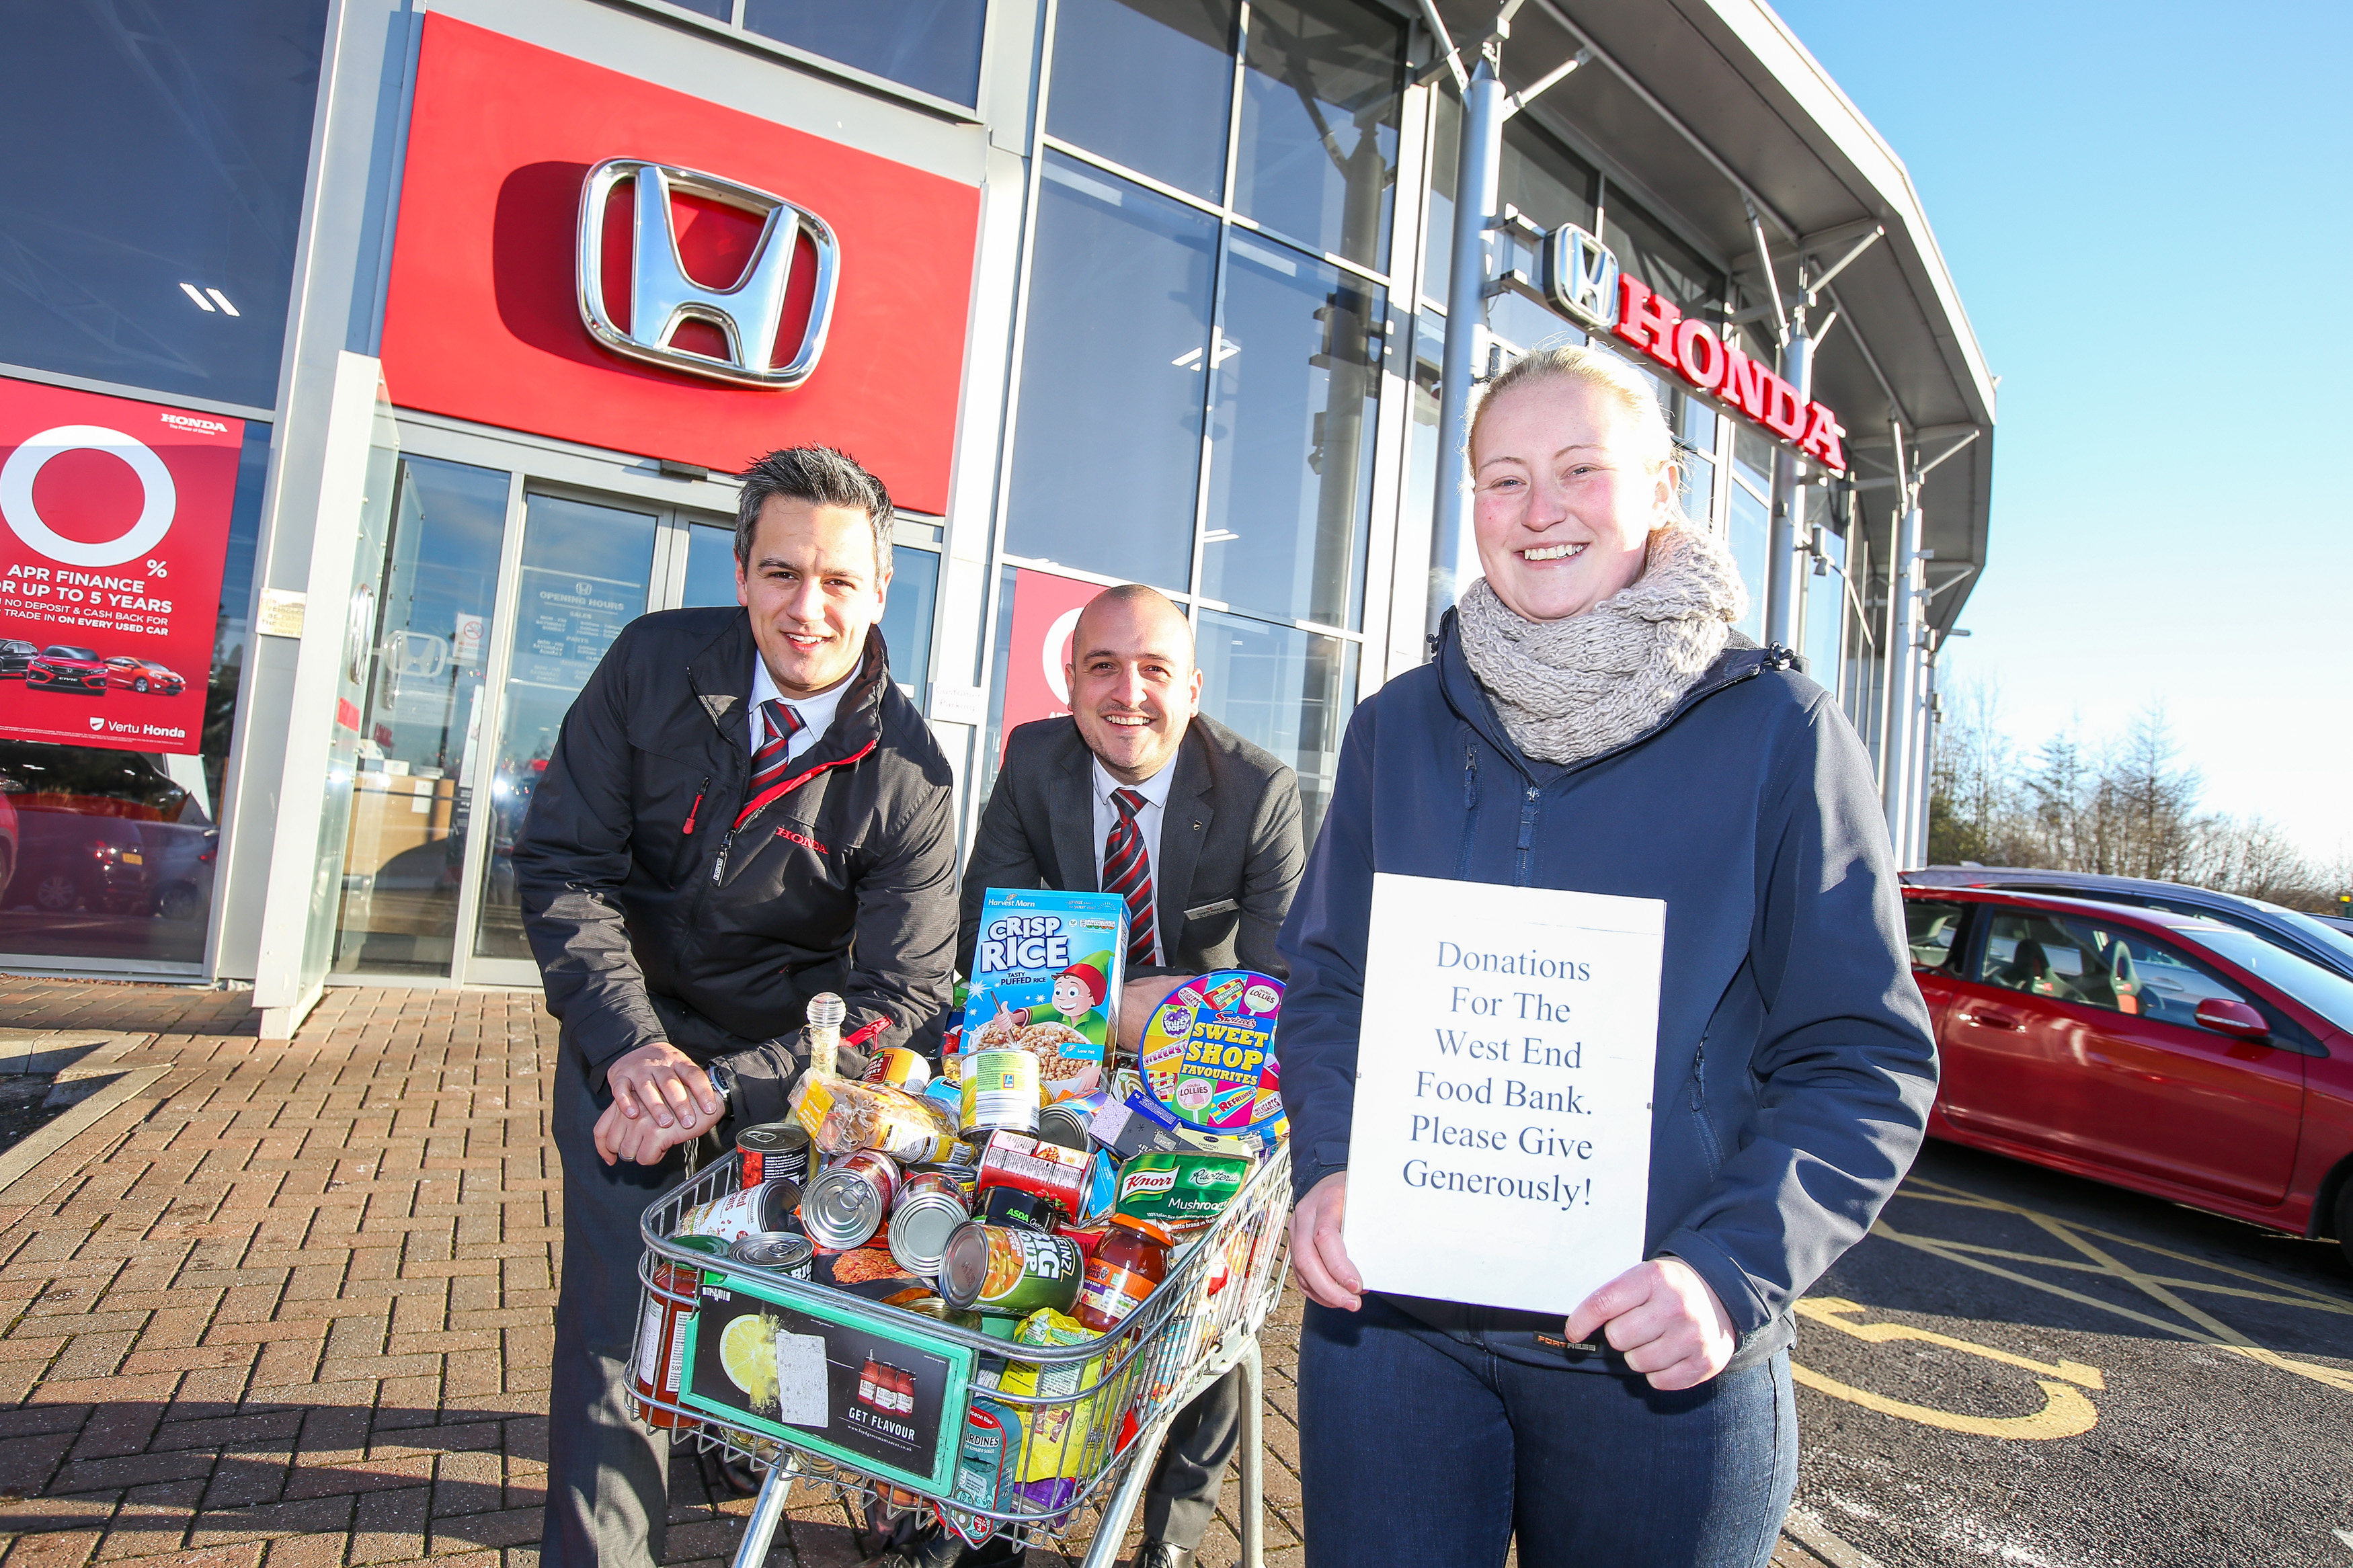 New Vertu Honda manager helps drive support for foodbank